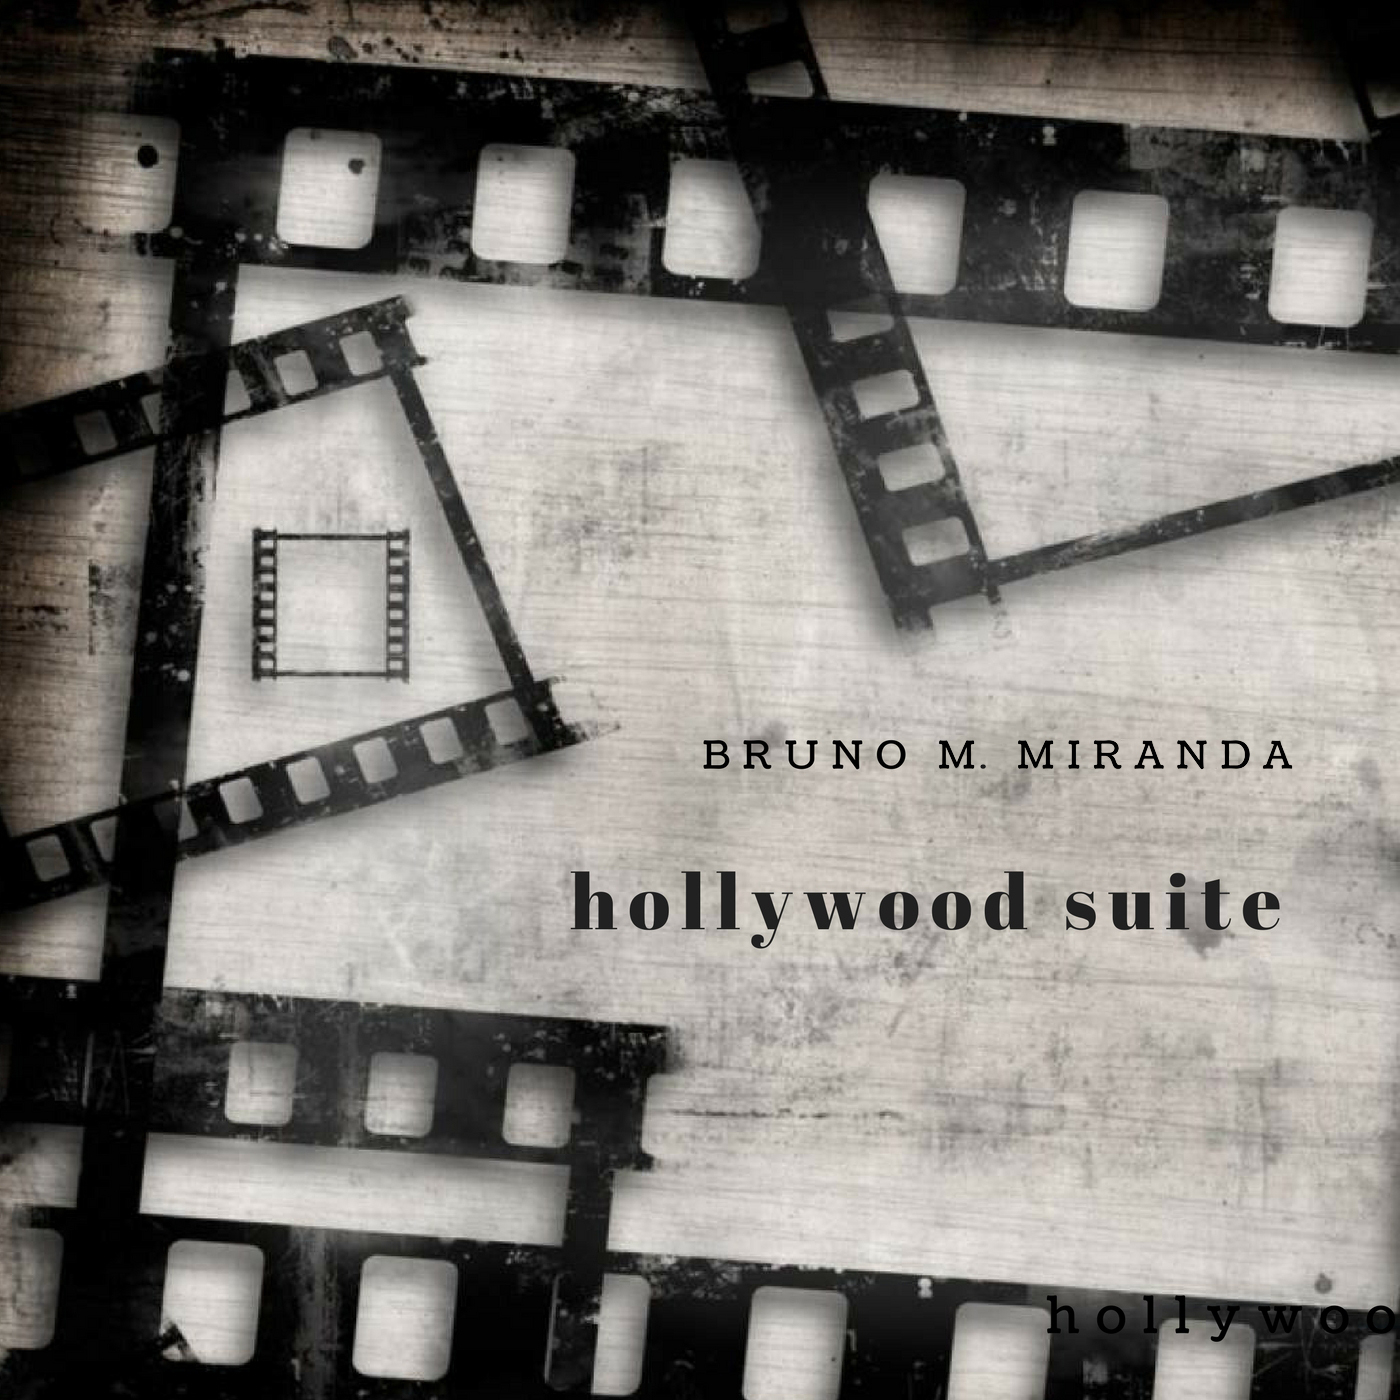 Hollywood Suite III: Action Theme